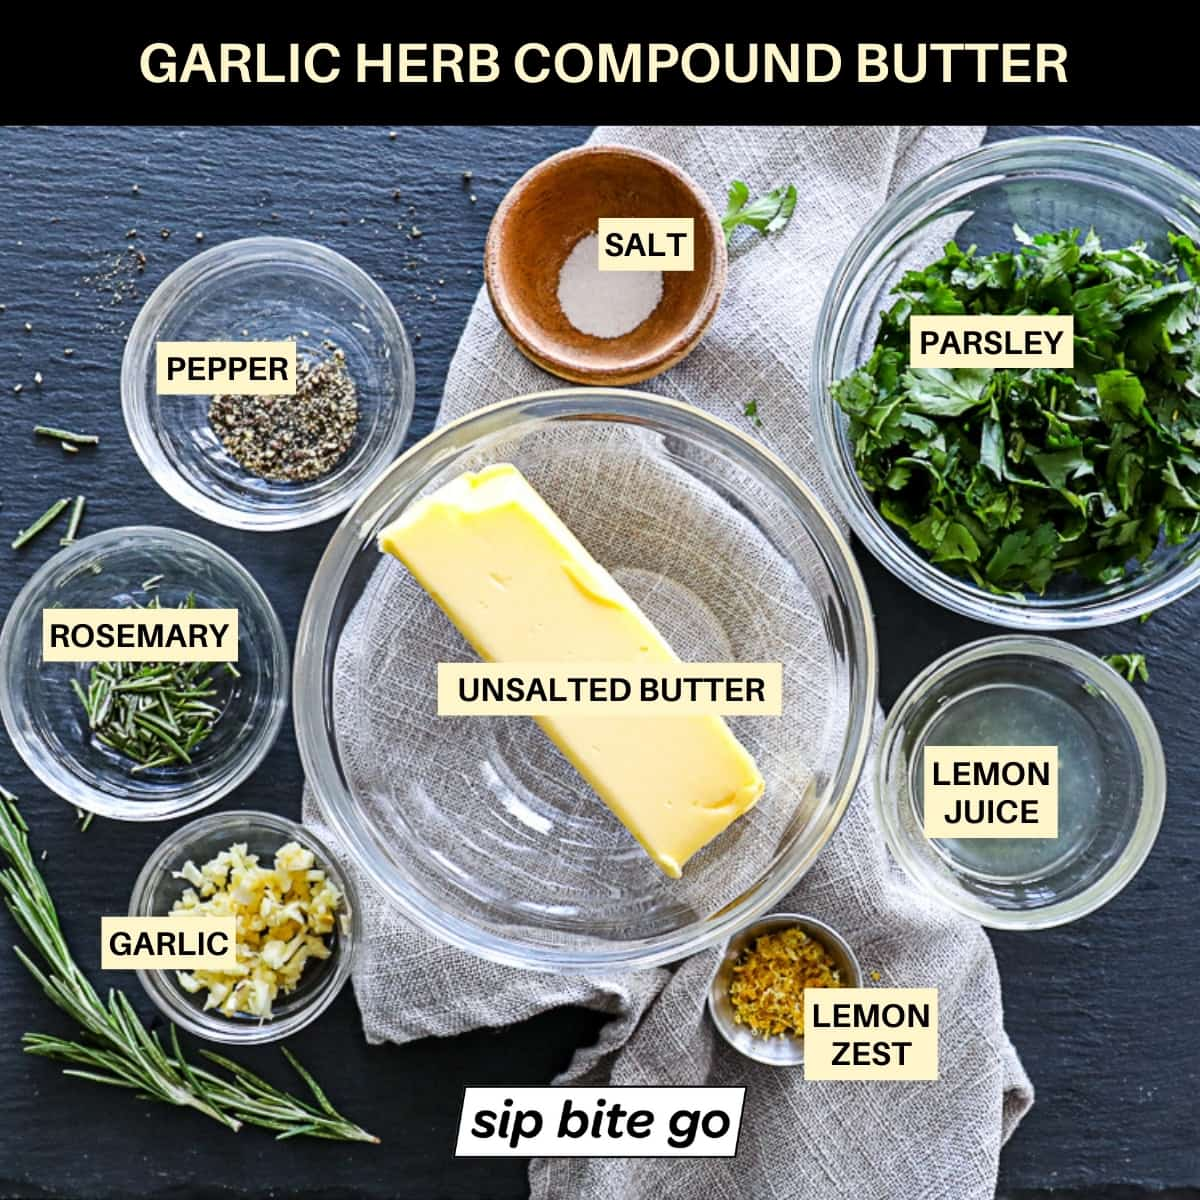 Infographic chart with photo and captions of ingredients to make garlic herb compound butter for steak including unsalted butter, parsley, rosemary, garlic, lemon zest and lemon juice.